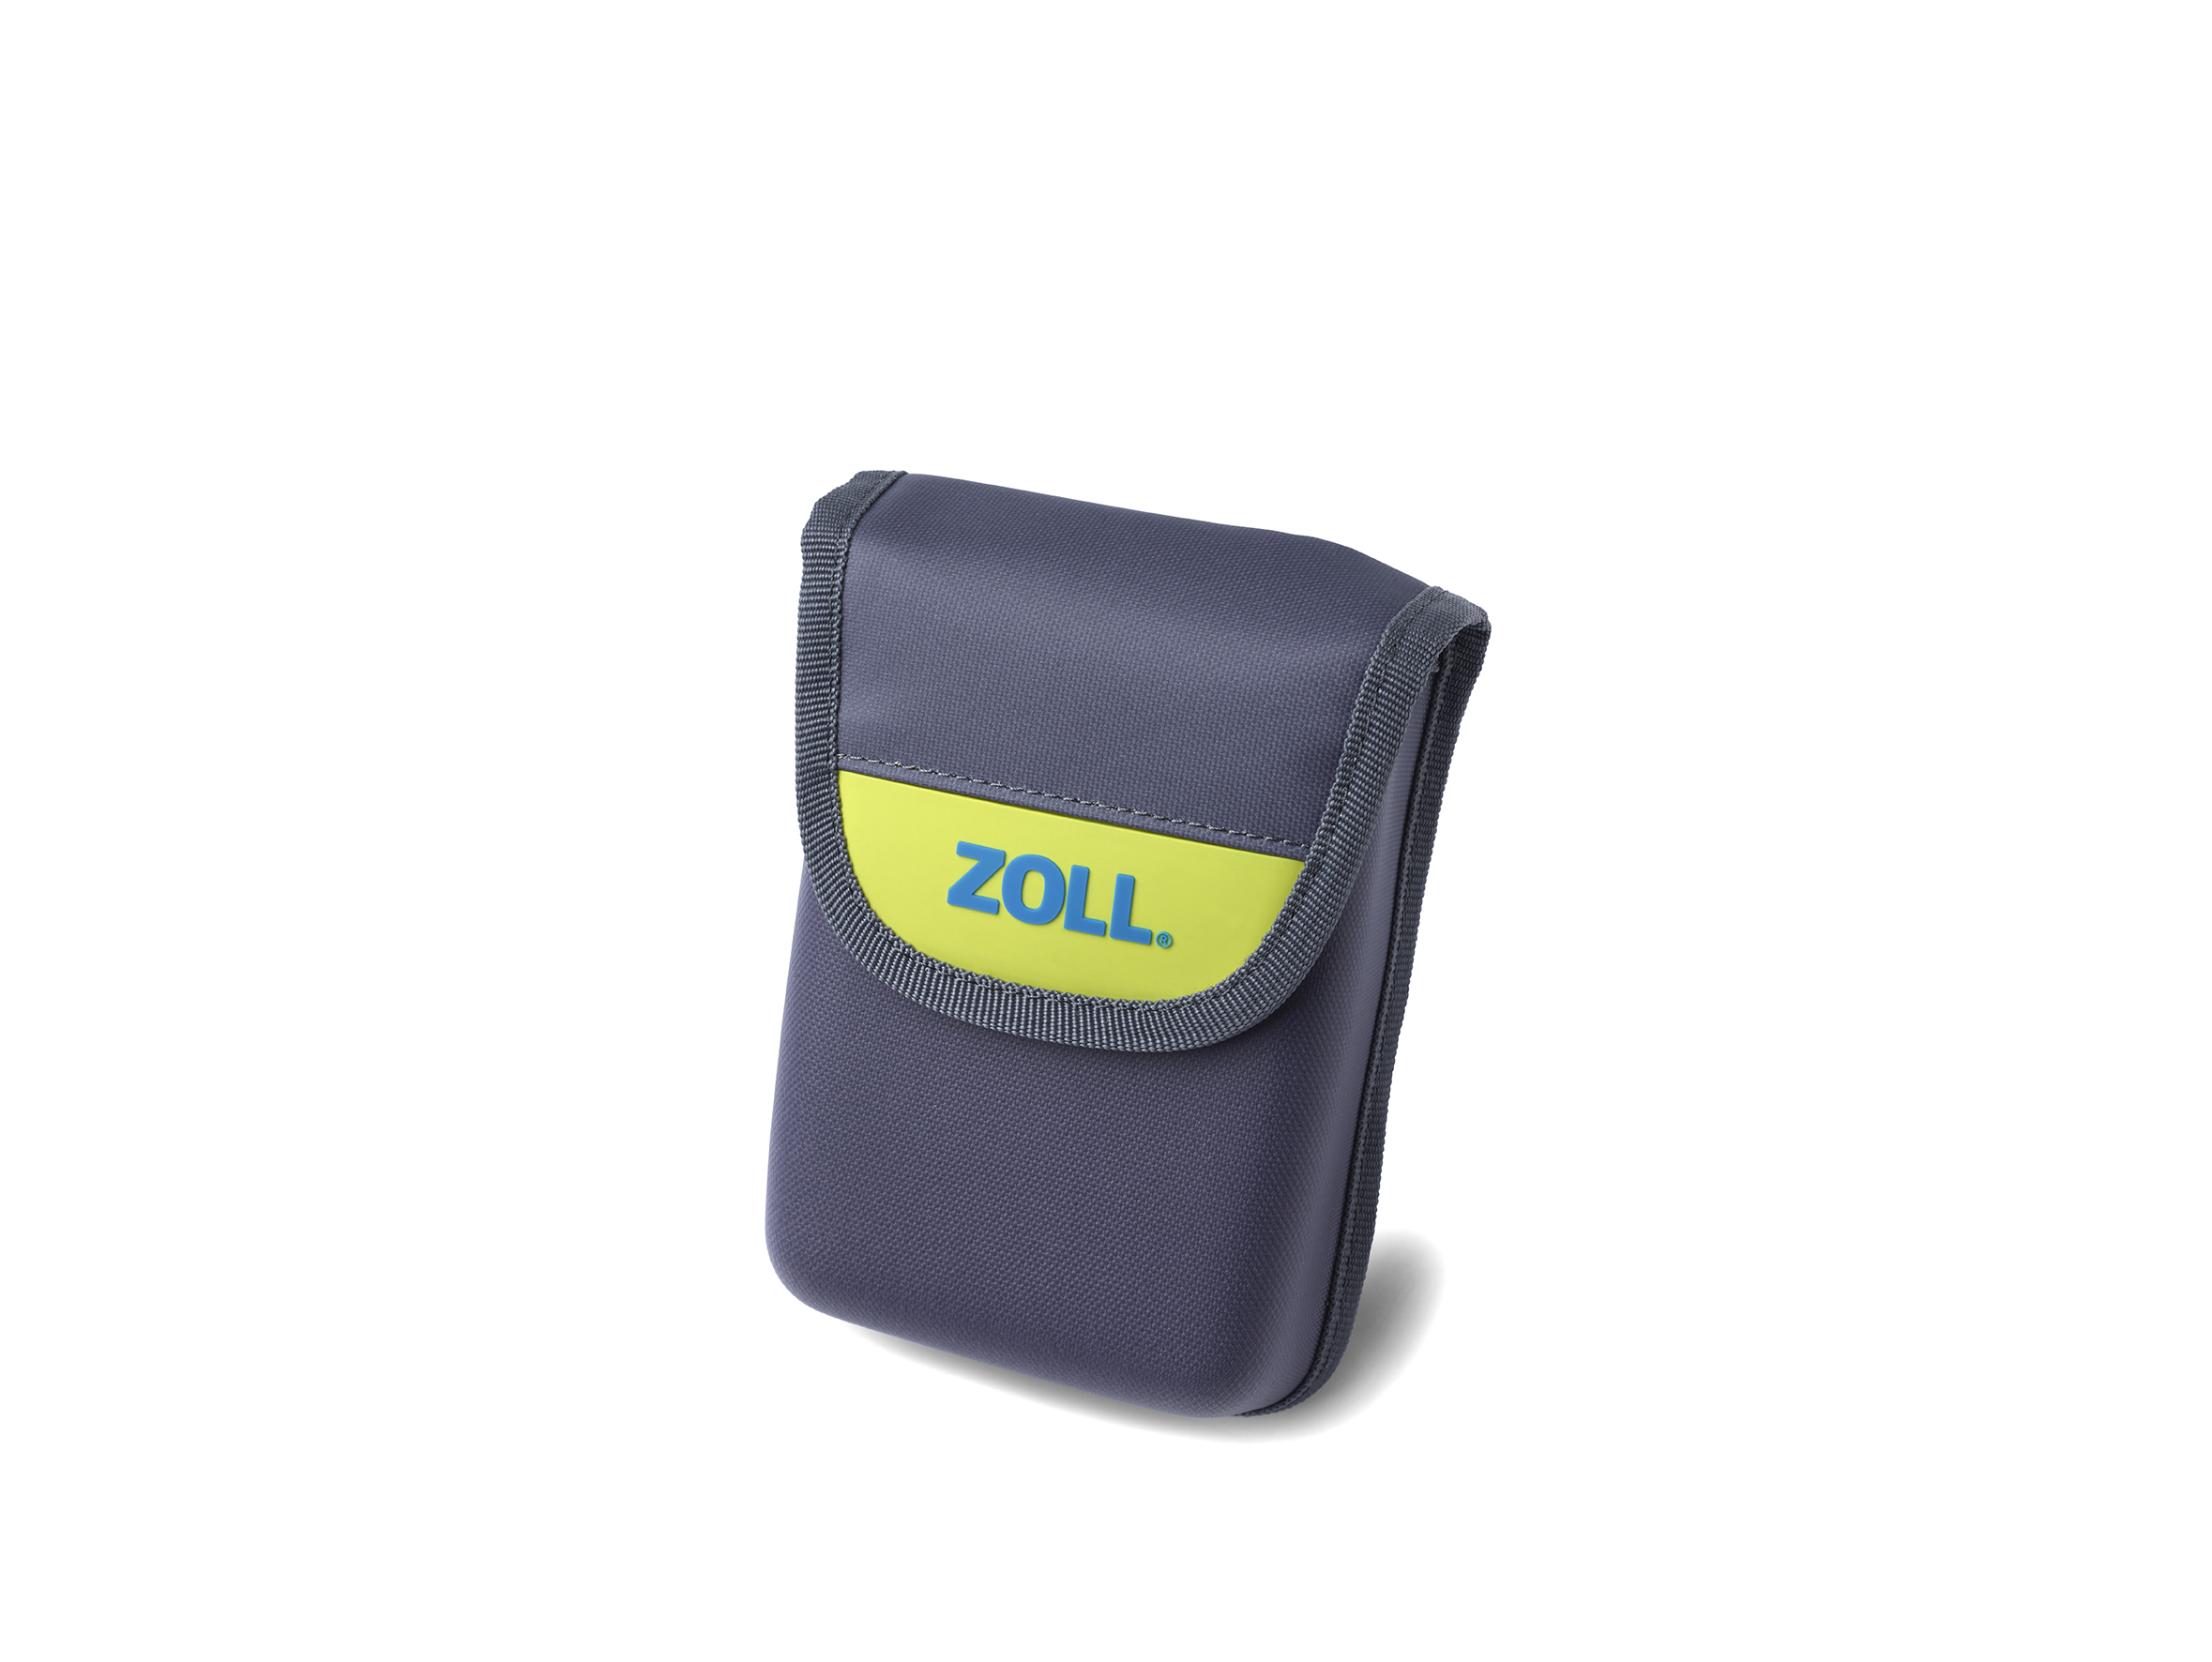 ZOLL AED 3 Spare Battery Case image